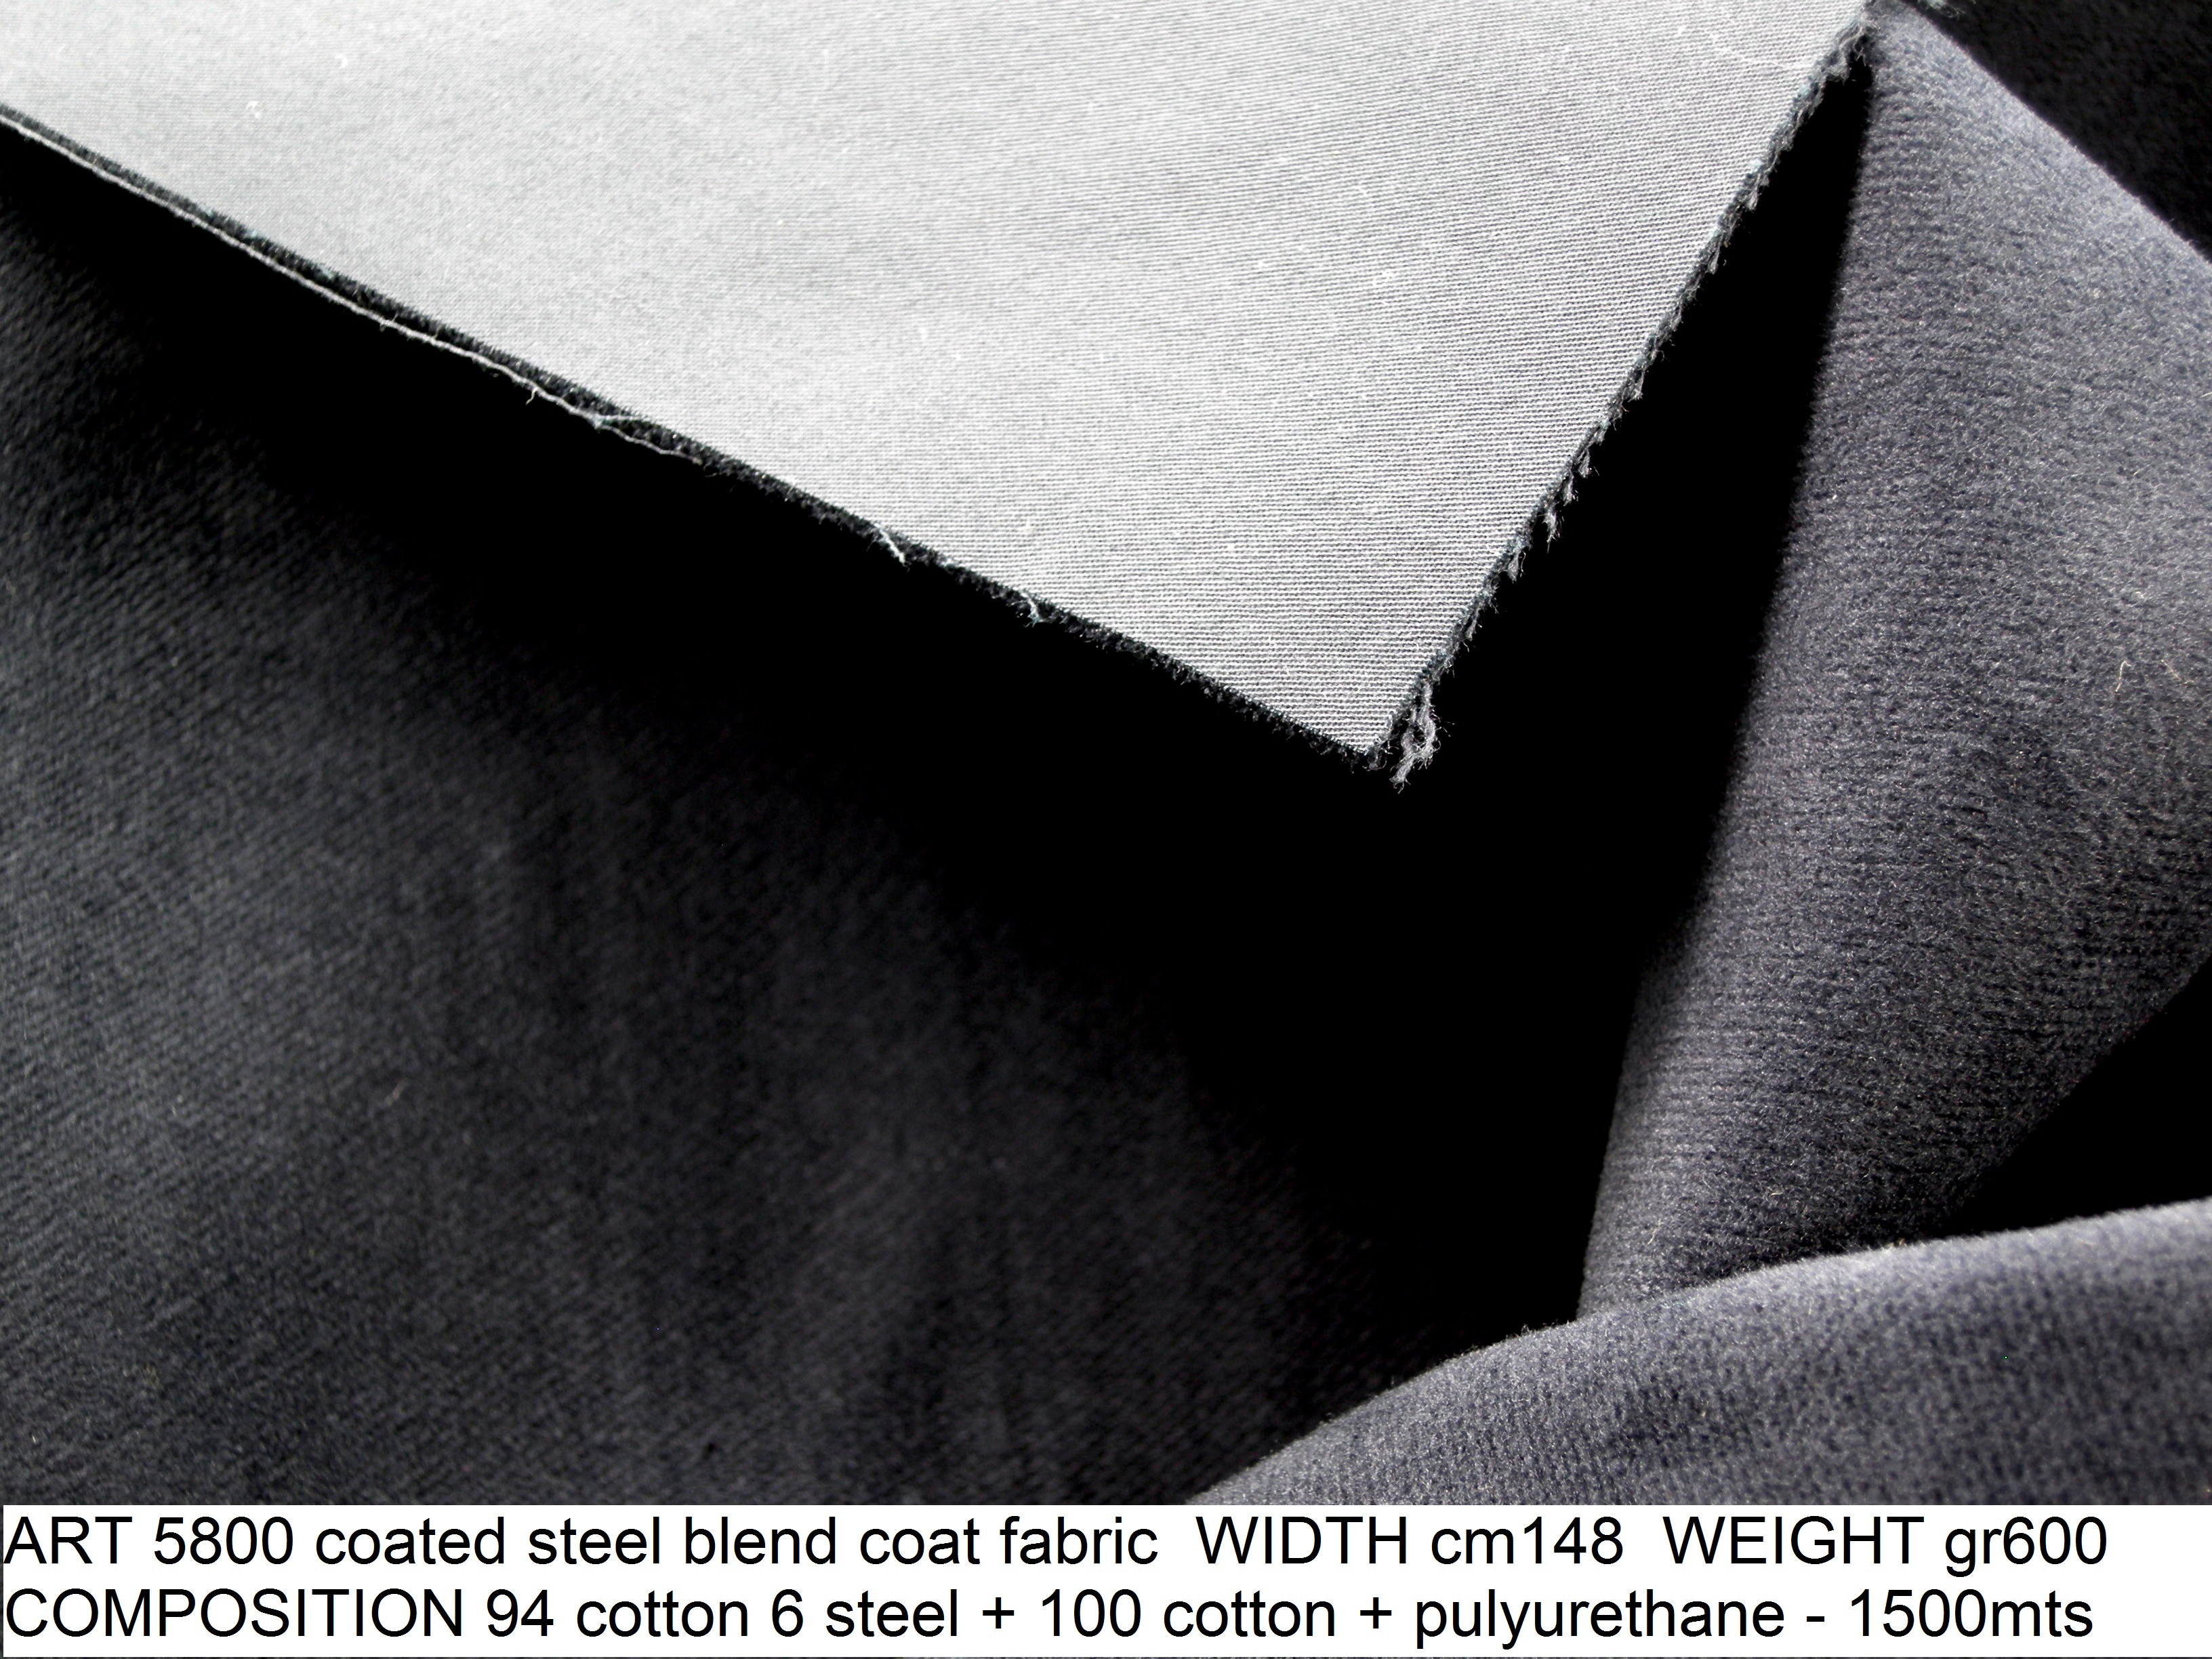 ART 5800 coated steel blend coat fabric WIDTH cm148 WEIGHT gr600 COMPOSITION 94 cotton 6 steel 100 cotton pulyurethane - 1500mts